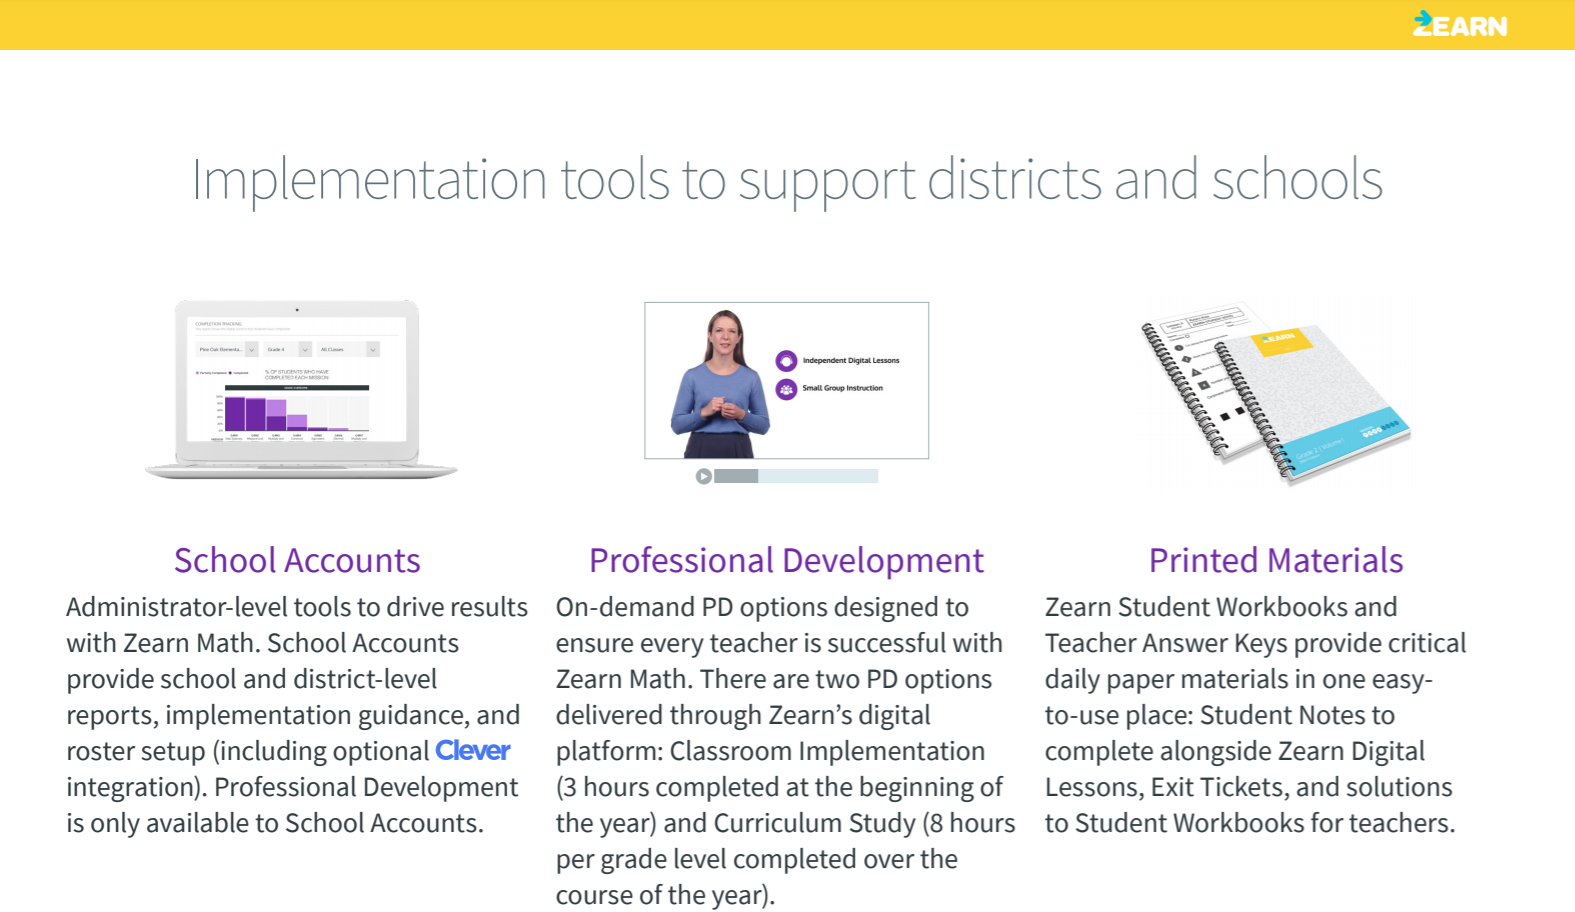 Implementation tools - Zearn